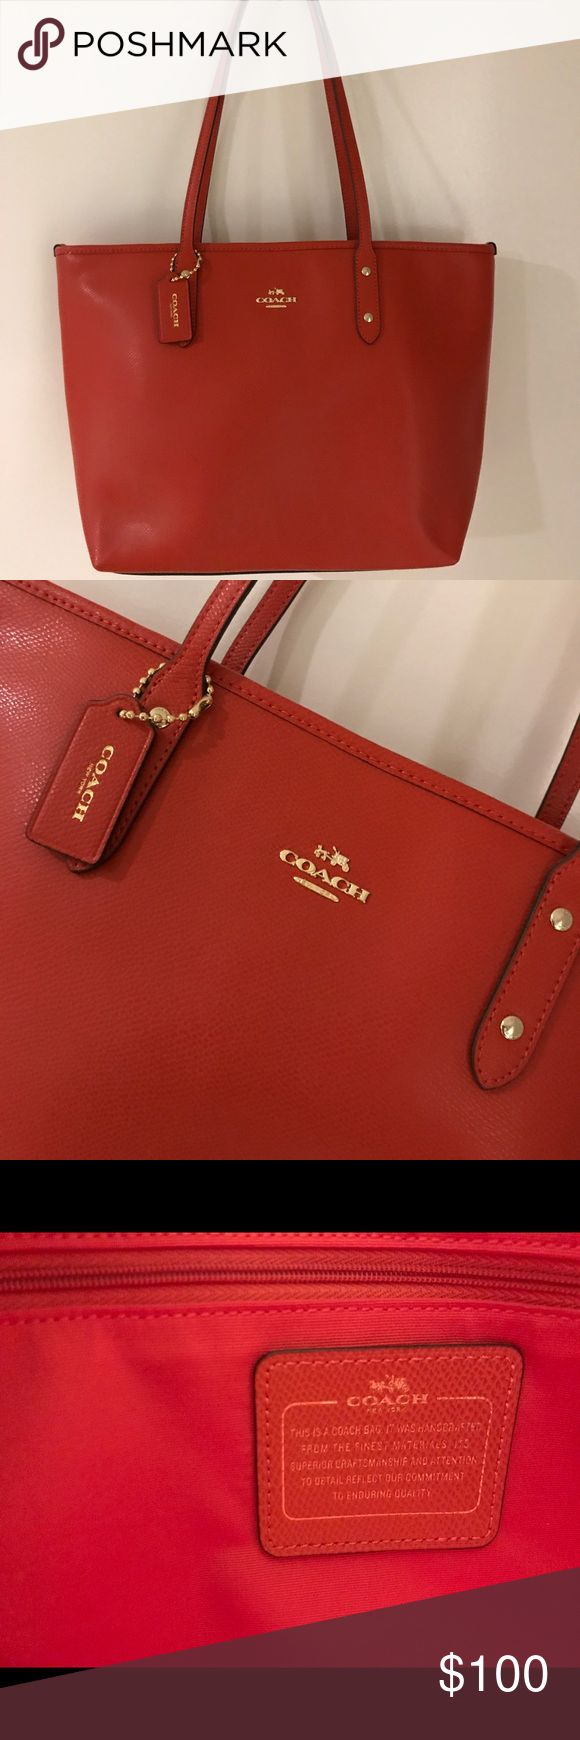 """Red Coach Tote NWOT Gorgeous red leather Coach tote bag! It's brand new without tags, I received it as a gift but have just never used it. It's spacious and a beautiful color! There is a zipper at the top to close the whole thing to keep your belongings safe!  10"""" height x 16"""" length (measured through the center of the bag) and the strap comes 10"""" up off the top of the bag to fit over the shoulder! Coach Bags Totes"""